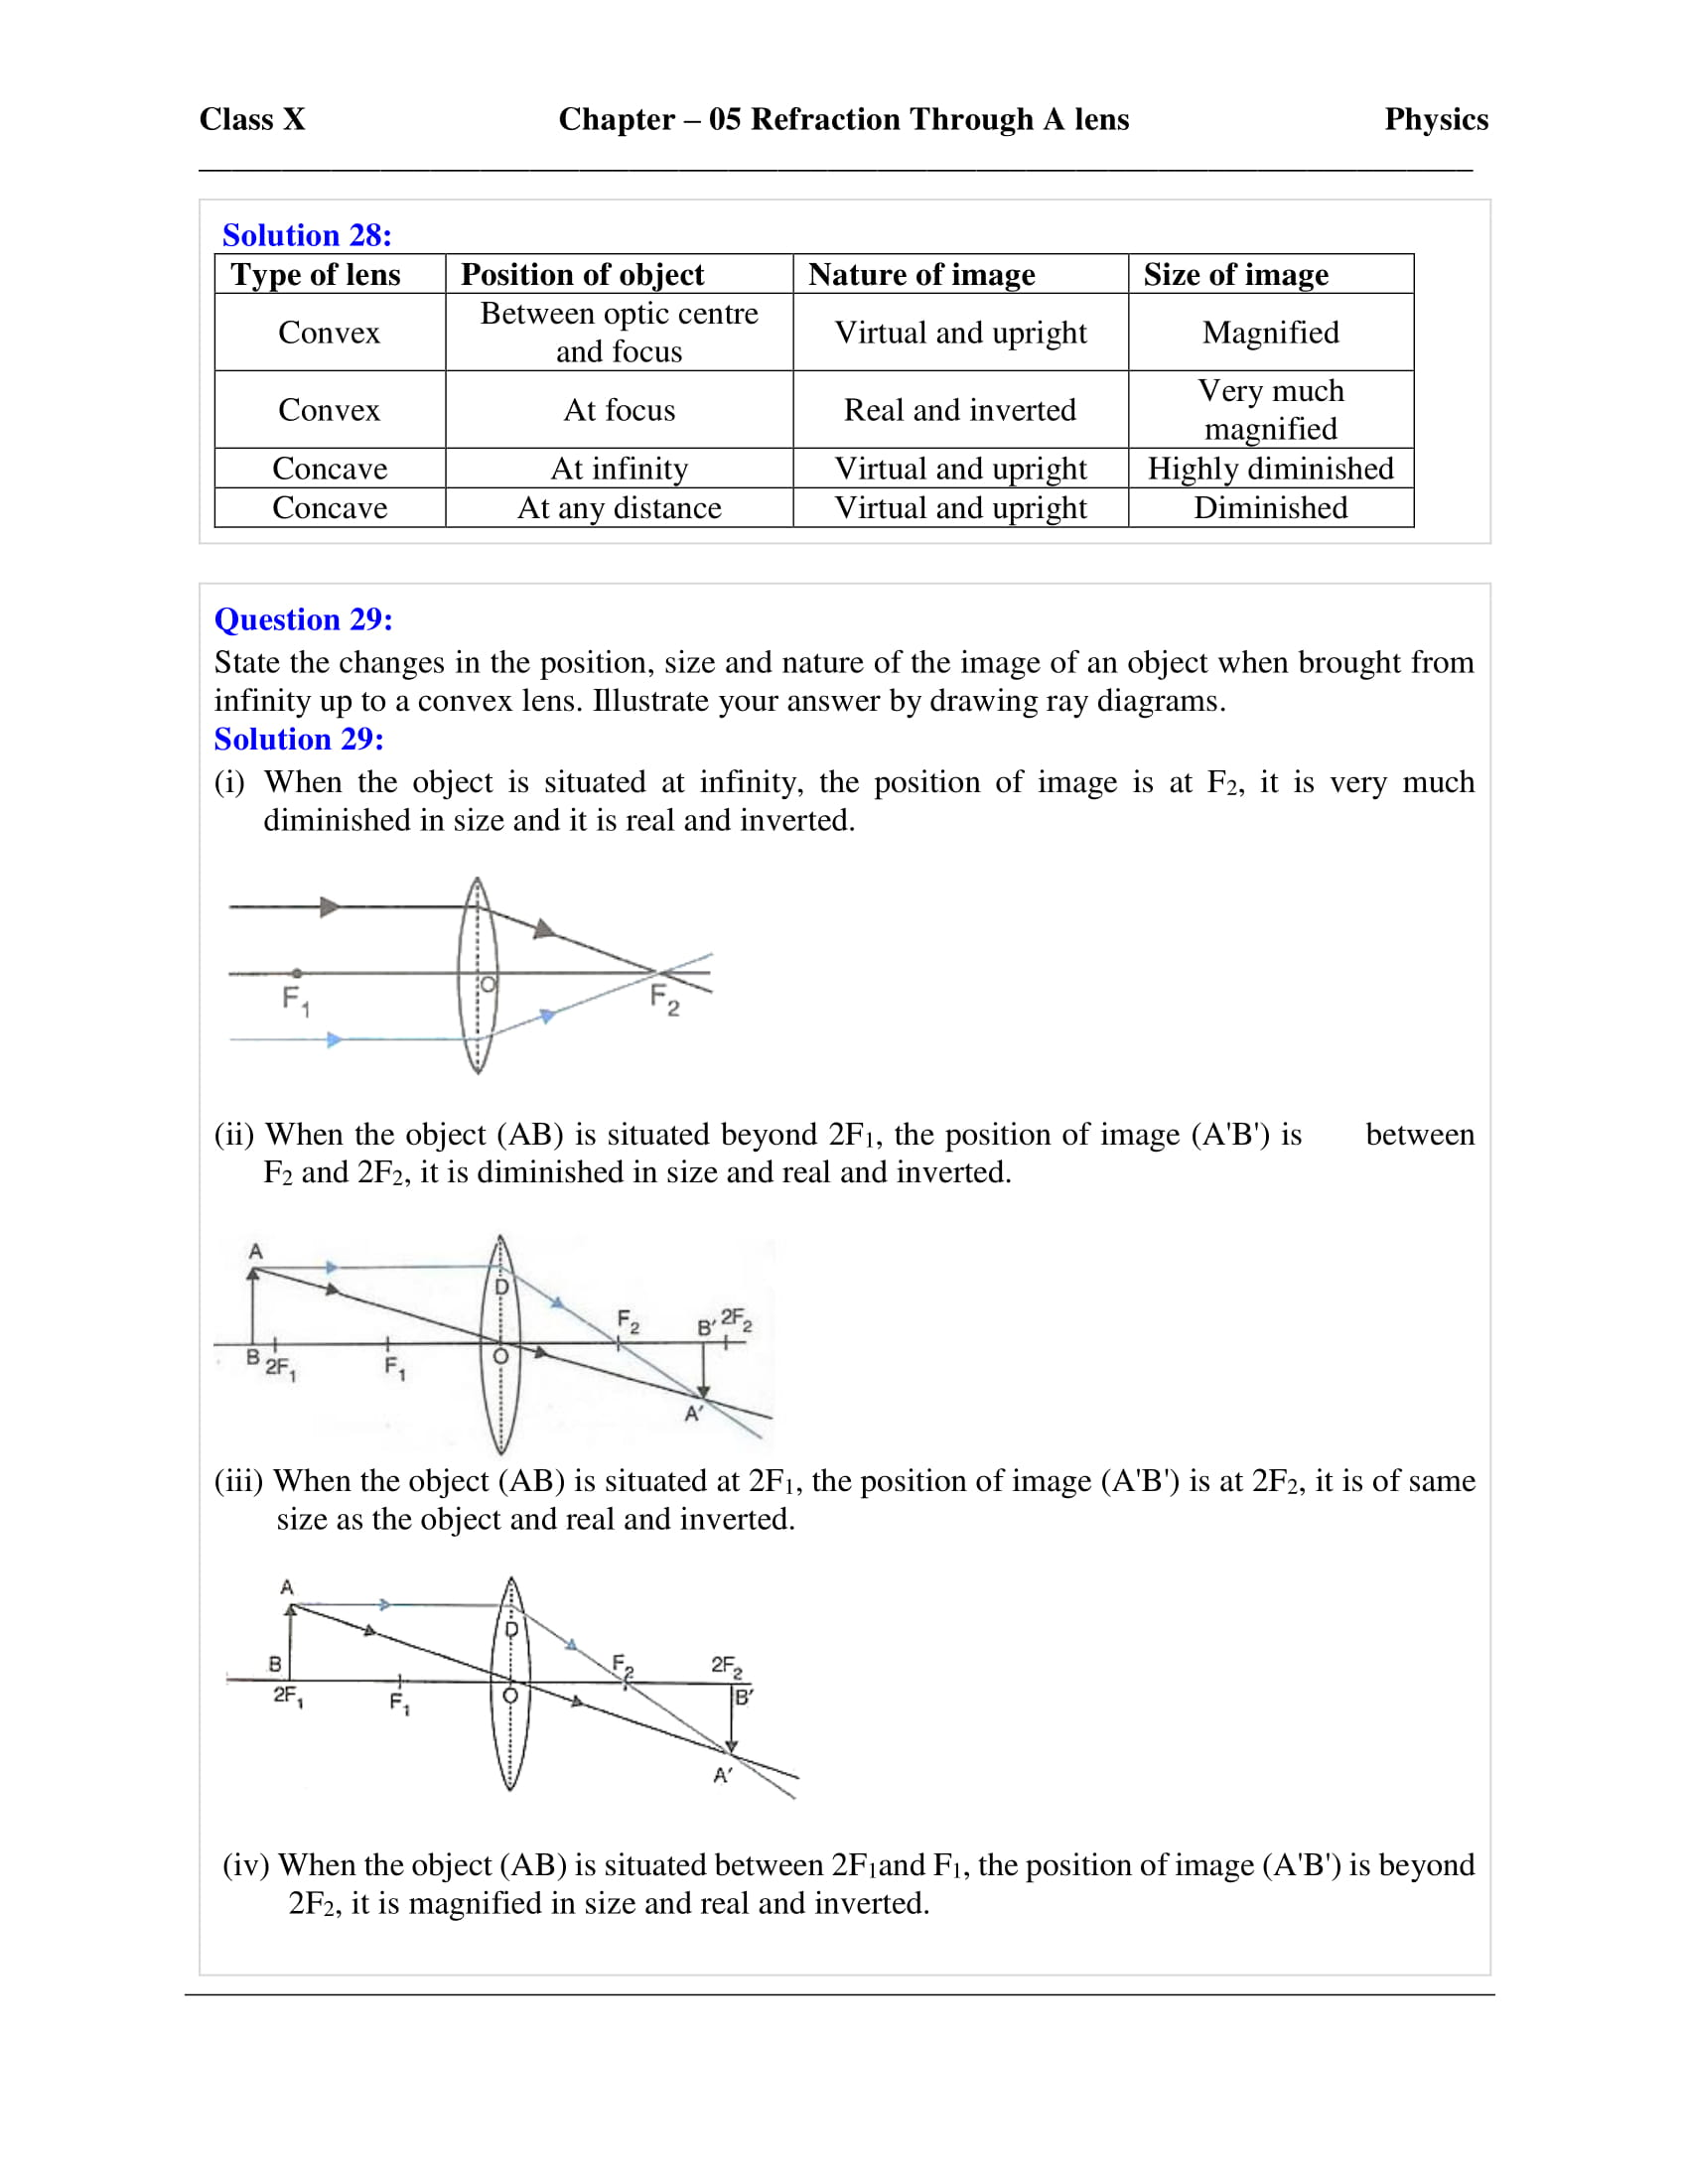 icse-selina-physics-solutions-class-10-chapter-5-refraction-through-a-lens-28